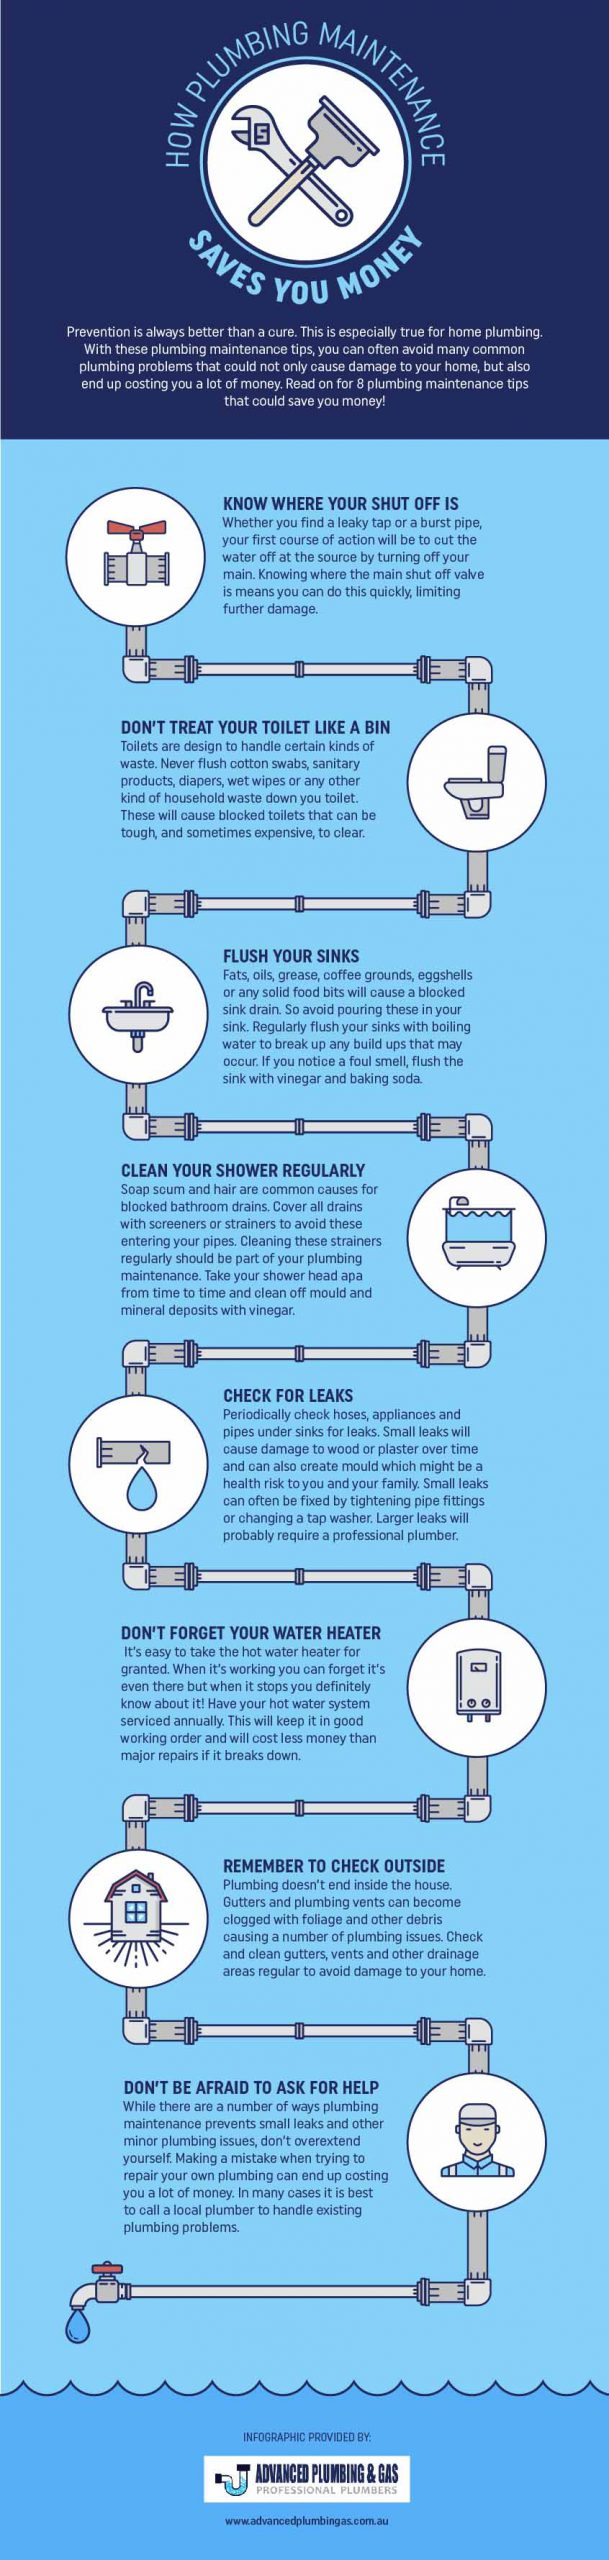 Plumbing Maintenance Tips Infographic 2 1 scaled